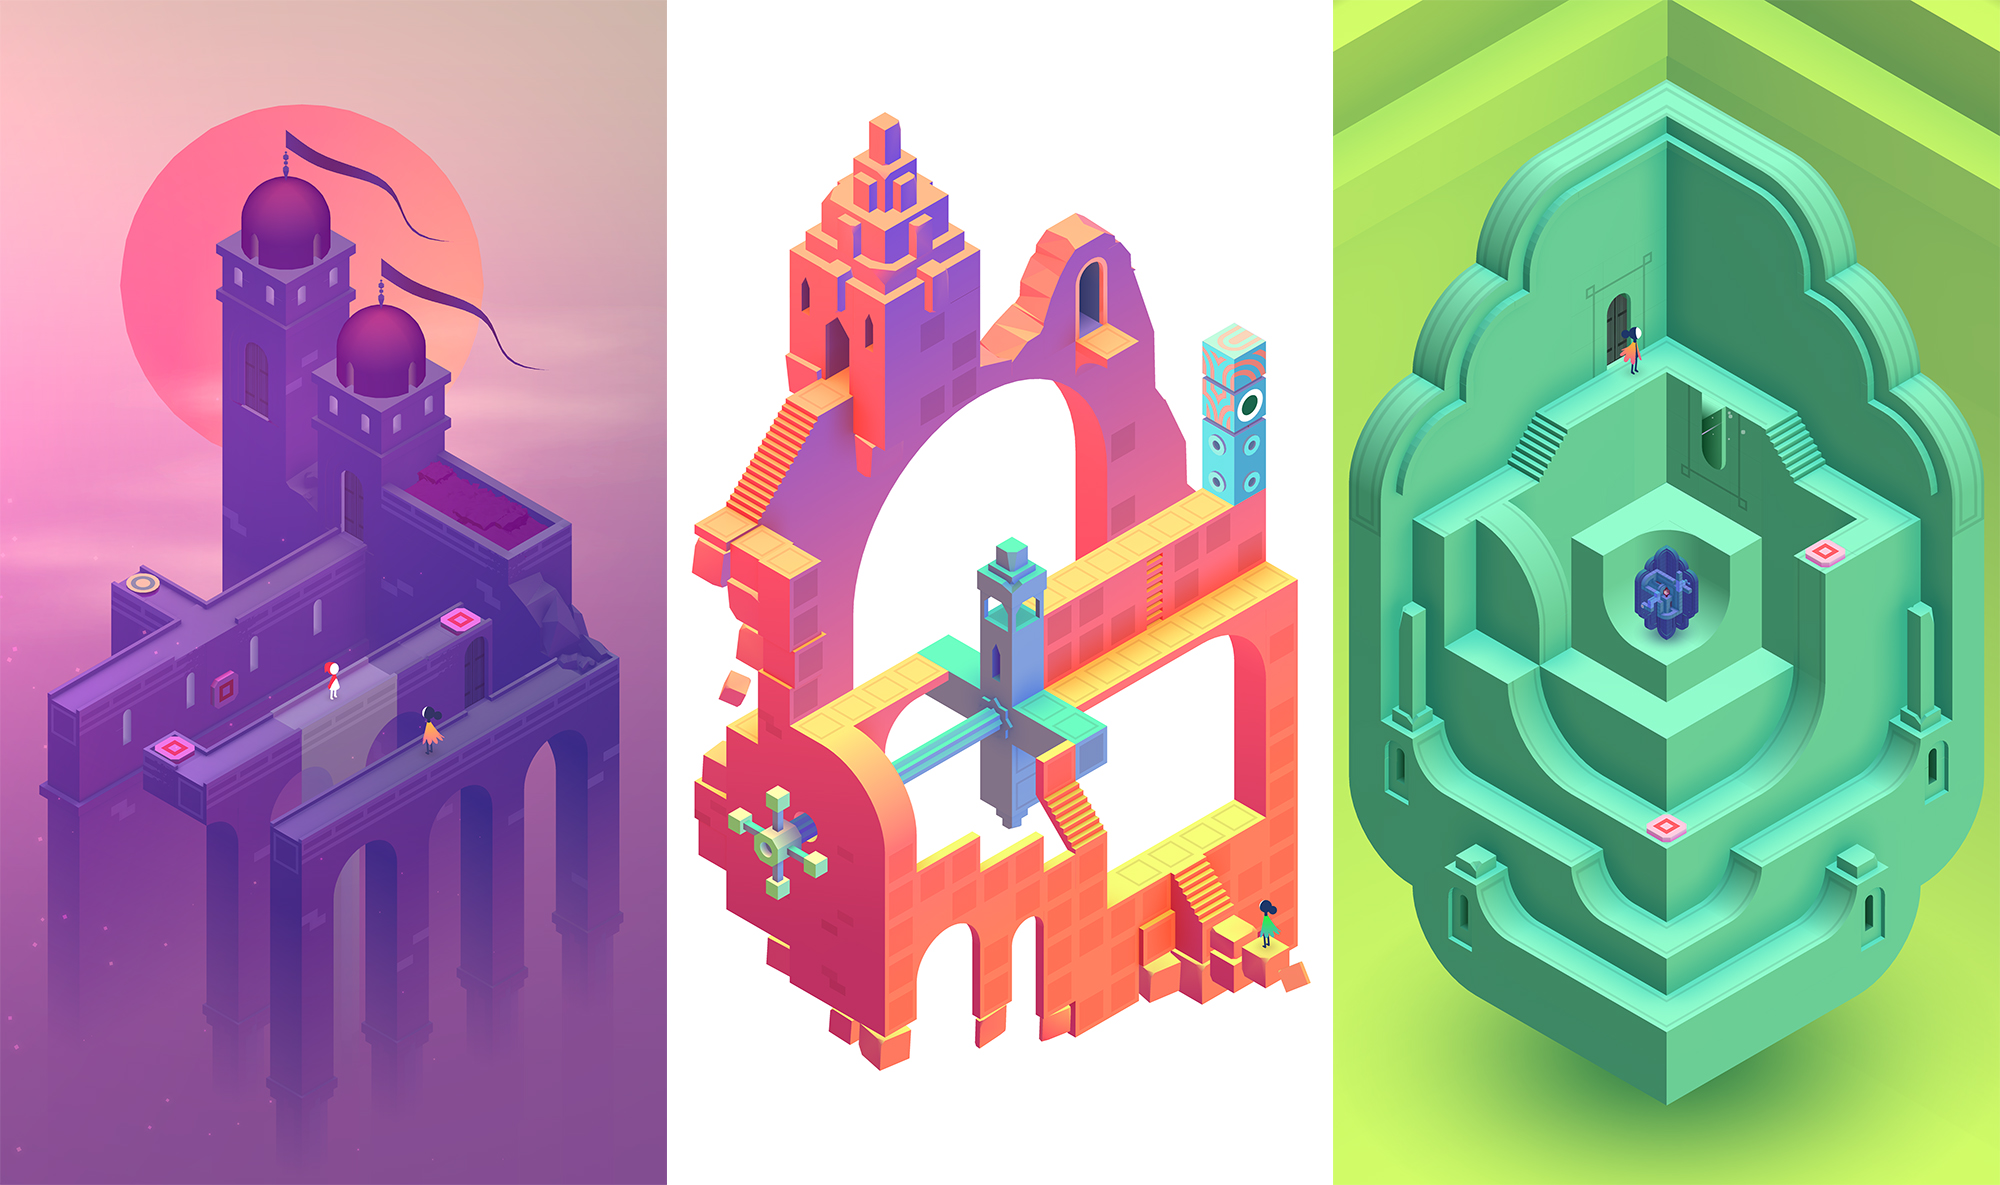 Monument Valley 2 and Lara Croft GO for Android are now free